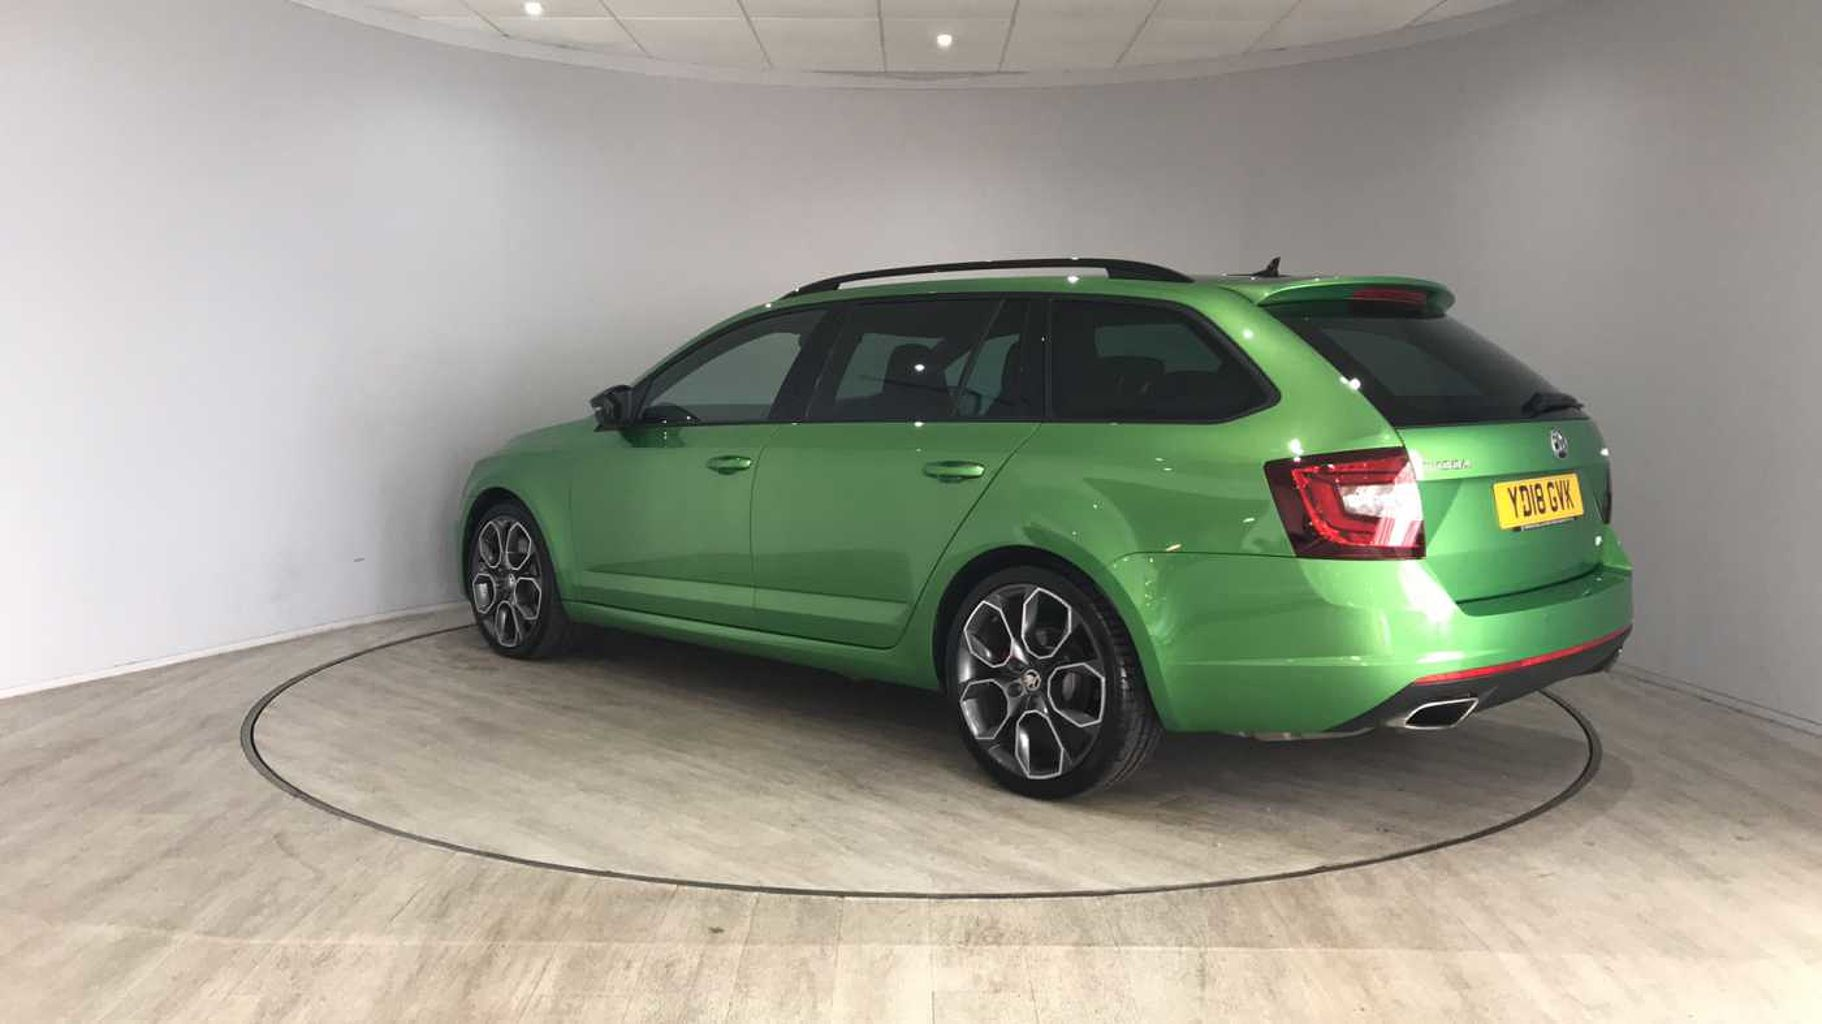 Skoda Octavia Vrs Estate Find A Used Green Škoda Octavia Vrs Estate 2017 2 Tsi